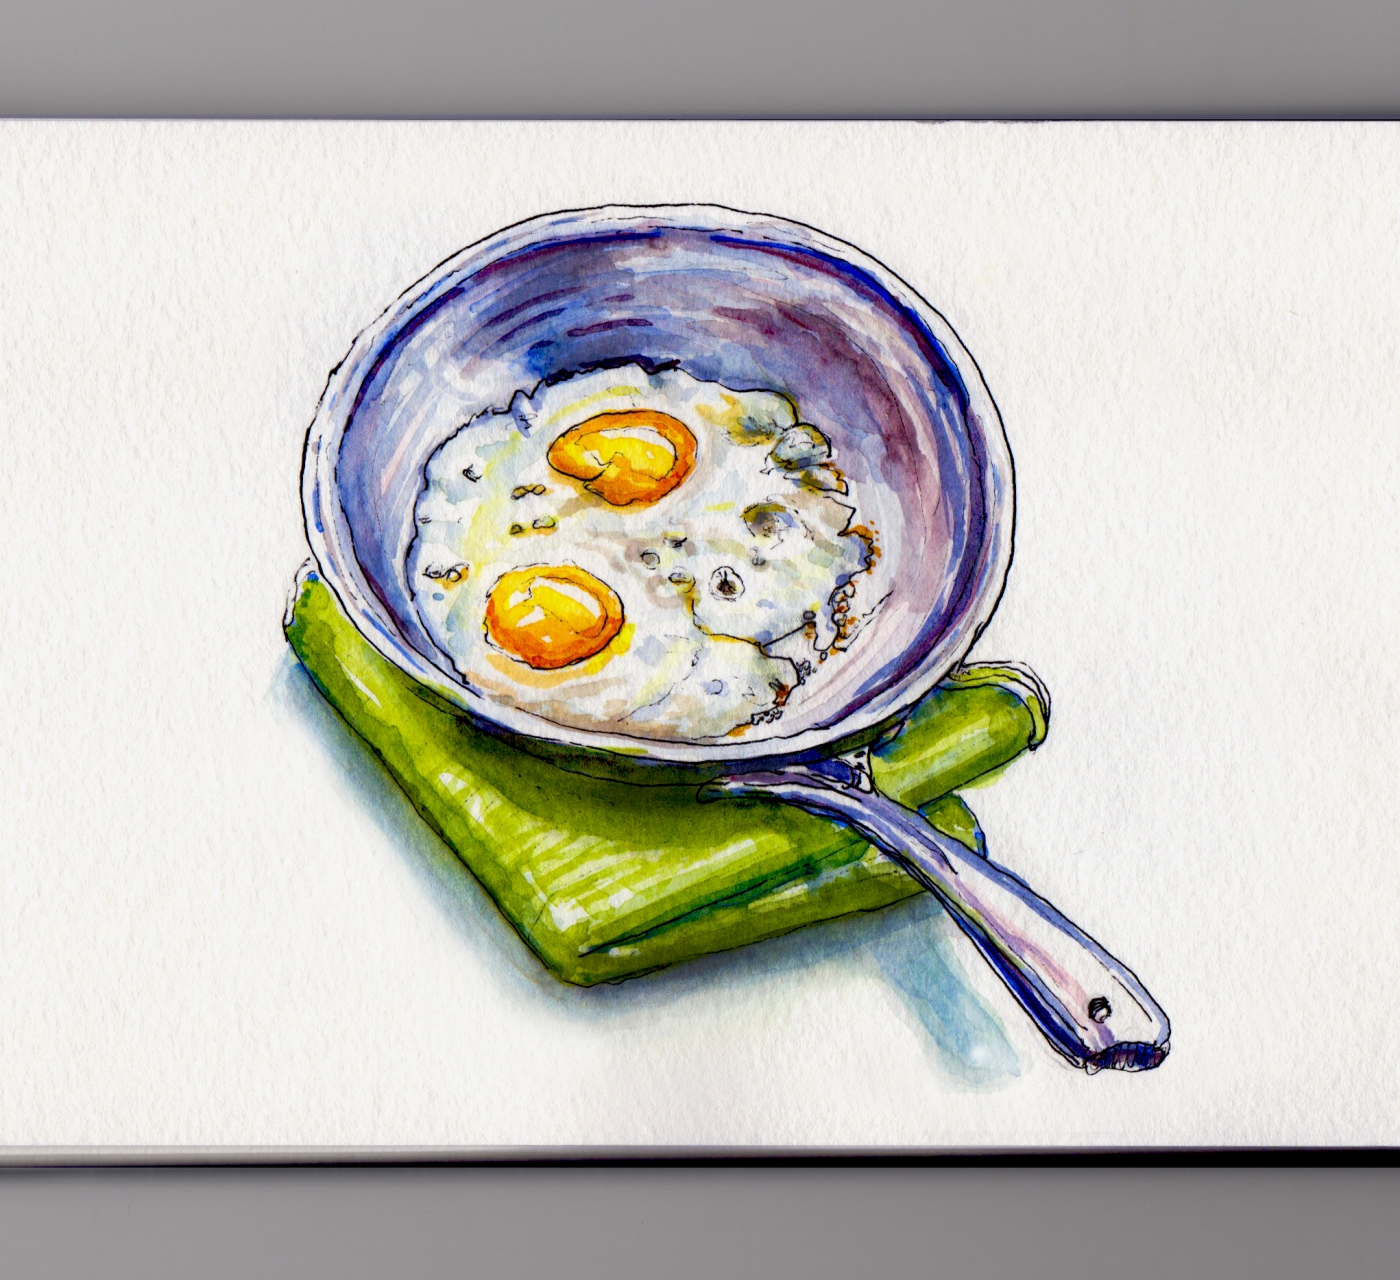 Day 27: #WorldWatercolorMonth Eggs Sunny Side Up in Metal Pan Skillet